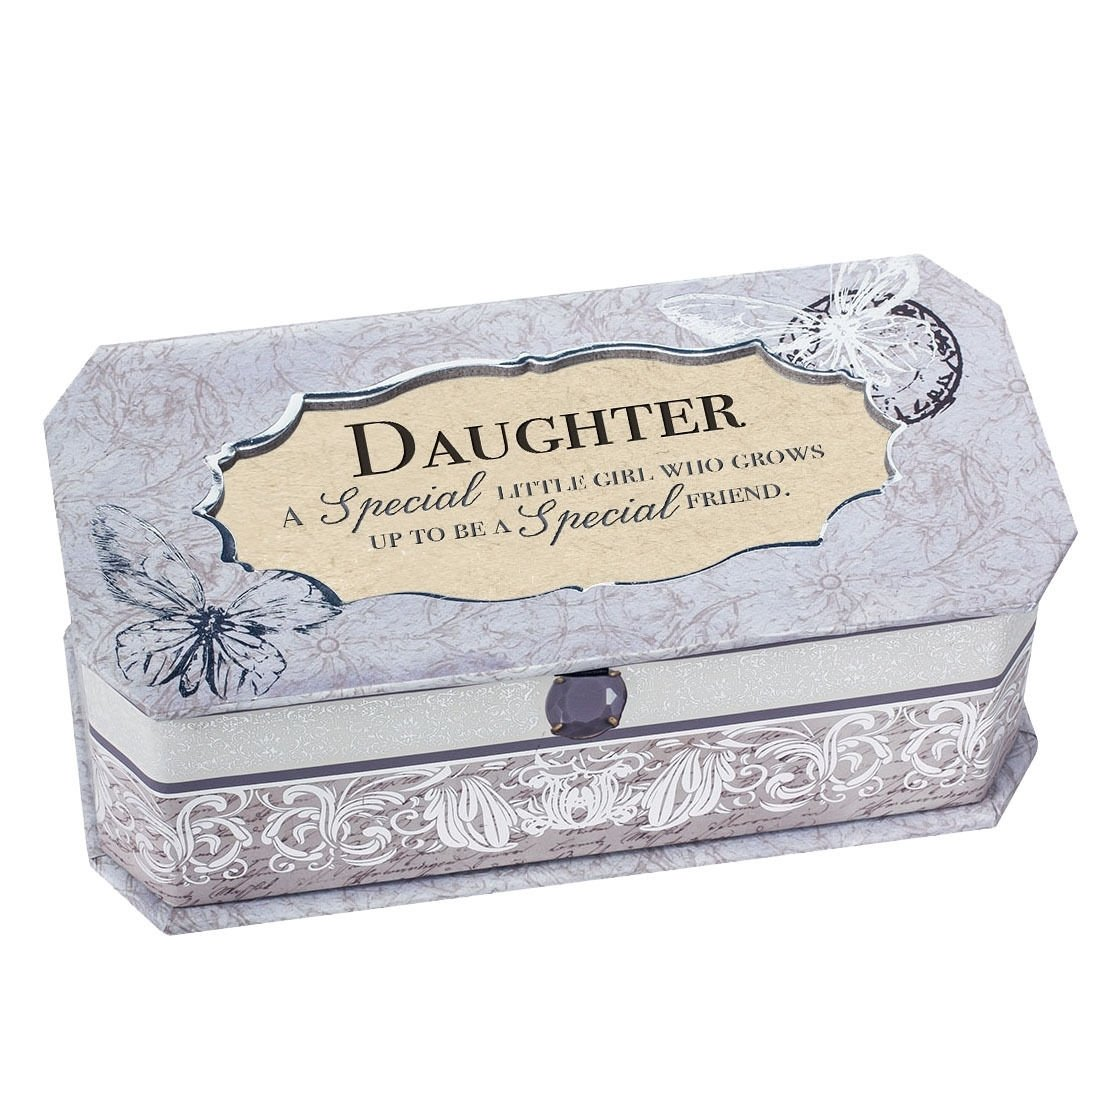 10 Lovely 18Th Birthday Gift Ideas For Daughter cottage garden musical jewellery box gift for daughter special 1 2020